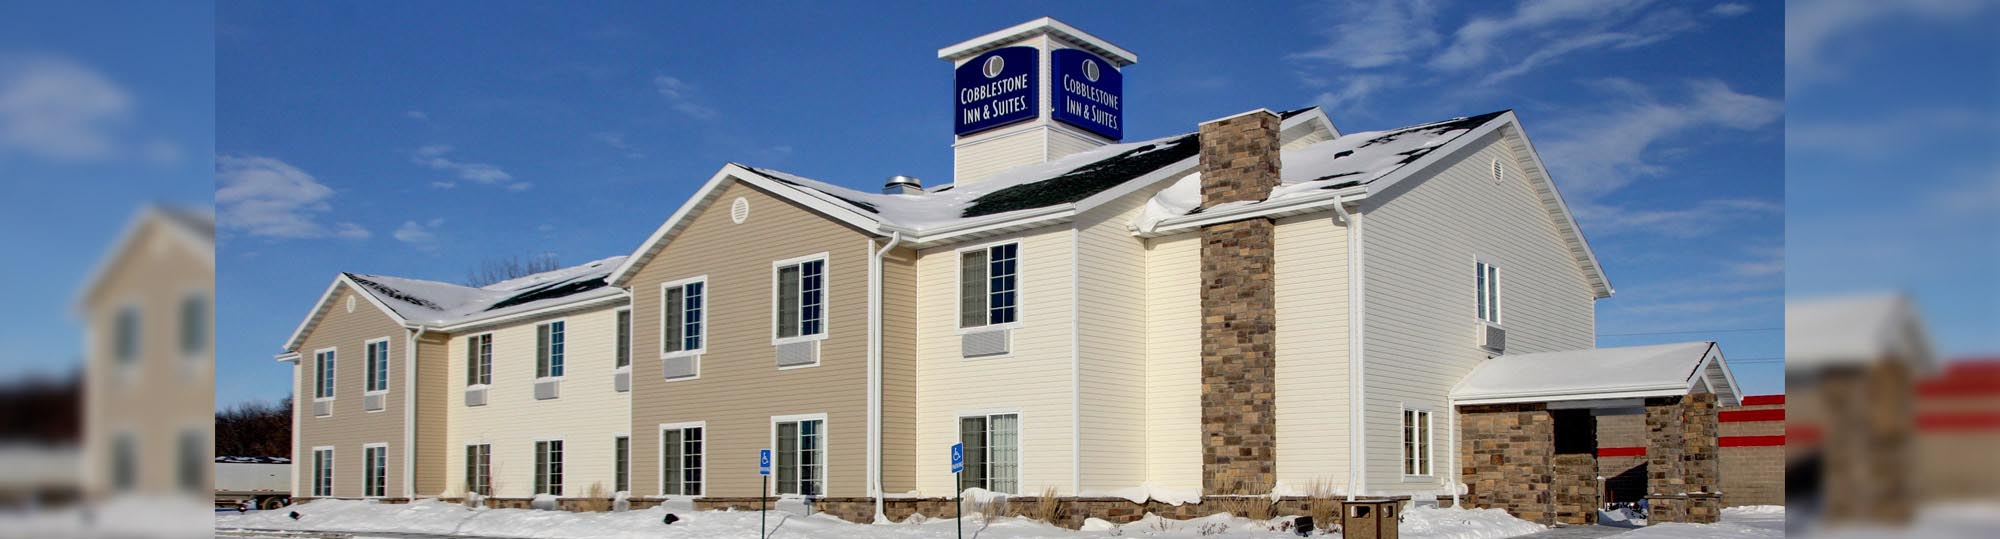 Cobblestone Inn And Suites Carrington